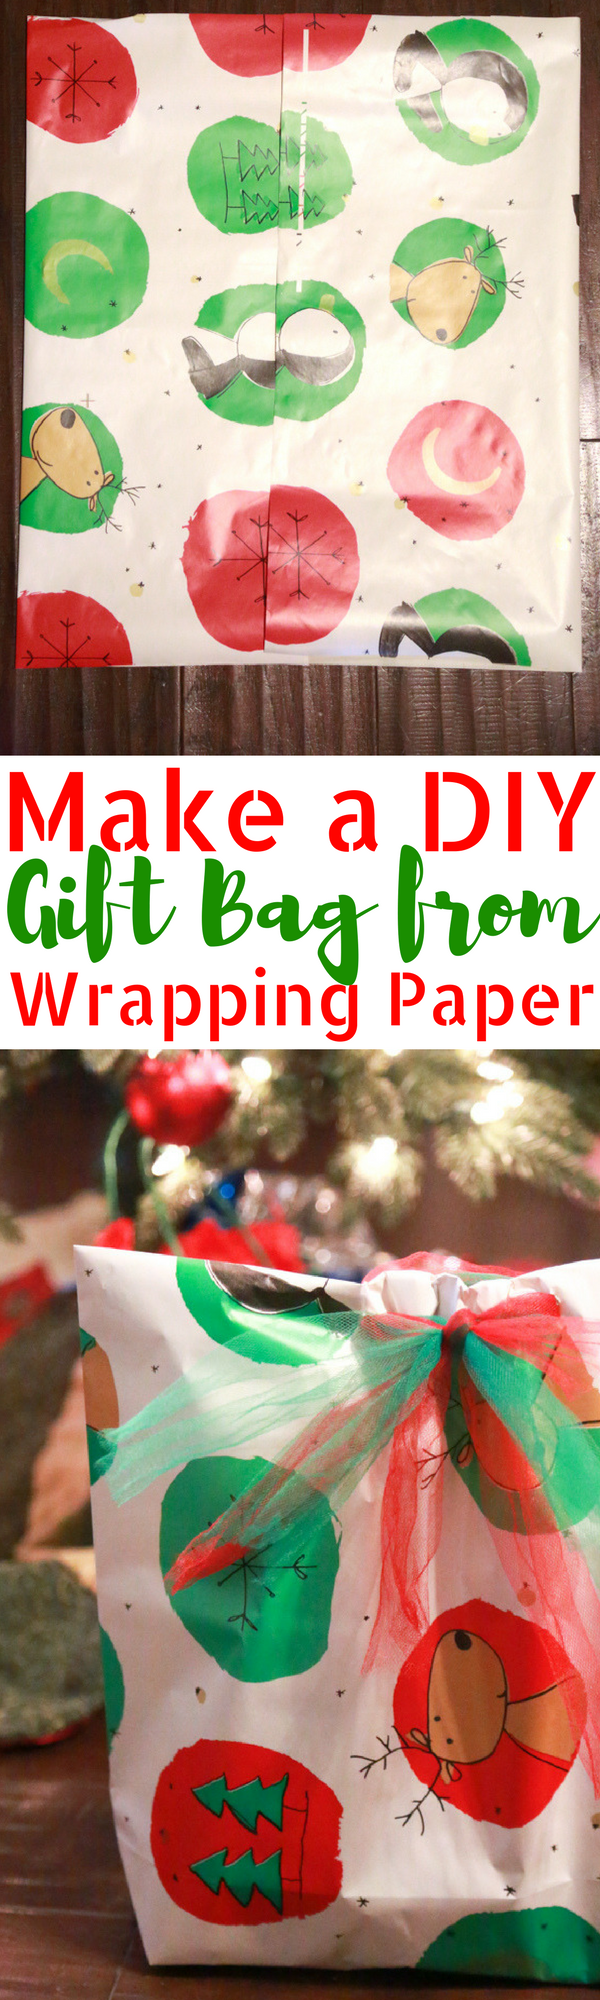 Need to wrap an odd-shaped present and don't have a gift bag at home. Make your own DIY Gift Bag from wrapping paper with this easy to follow tutorial.